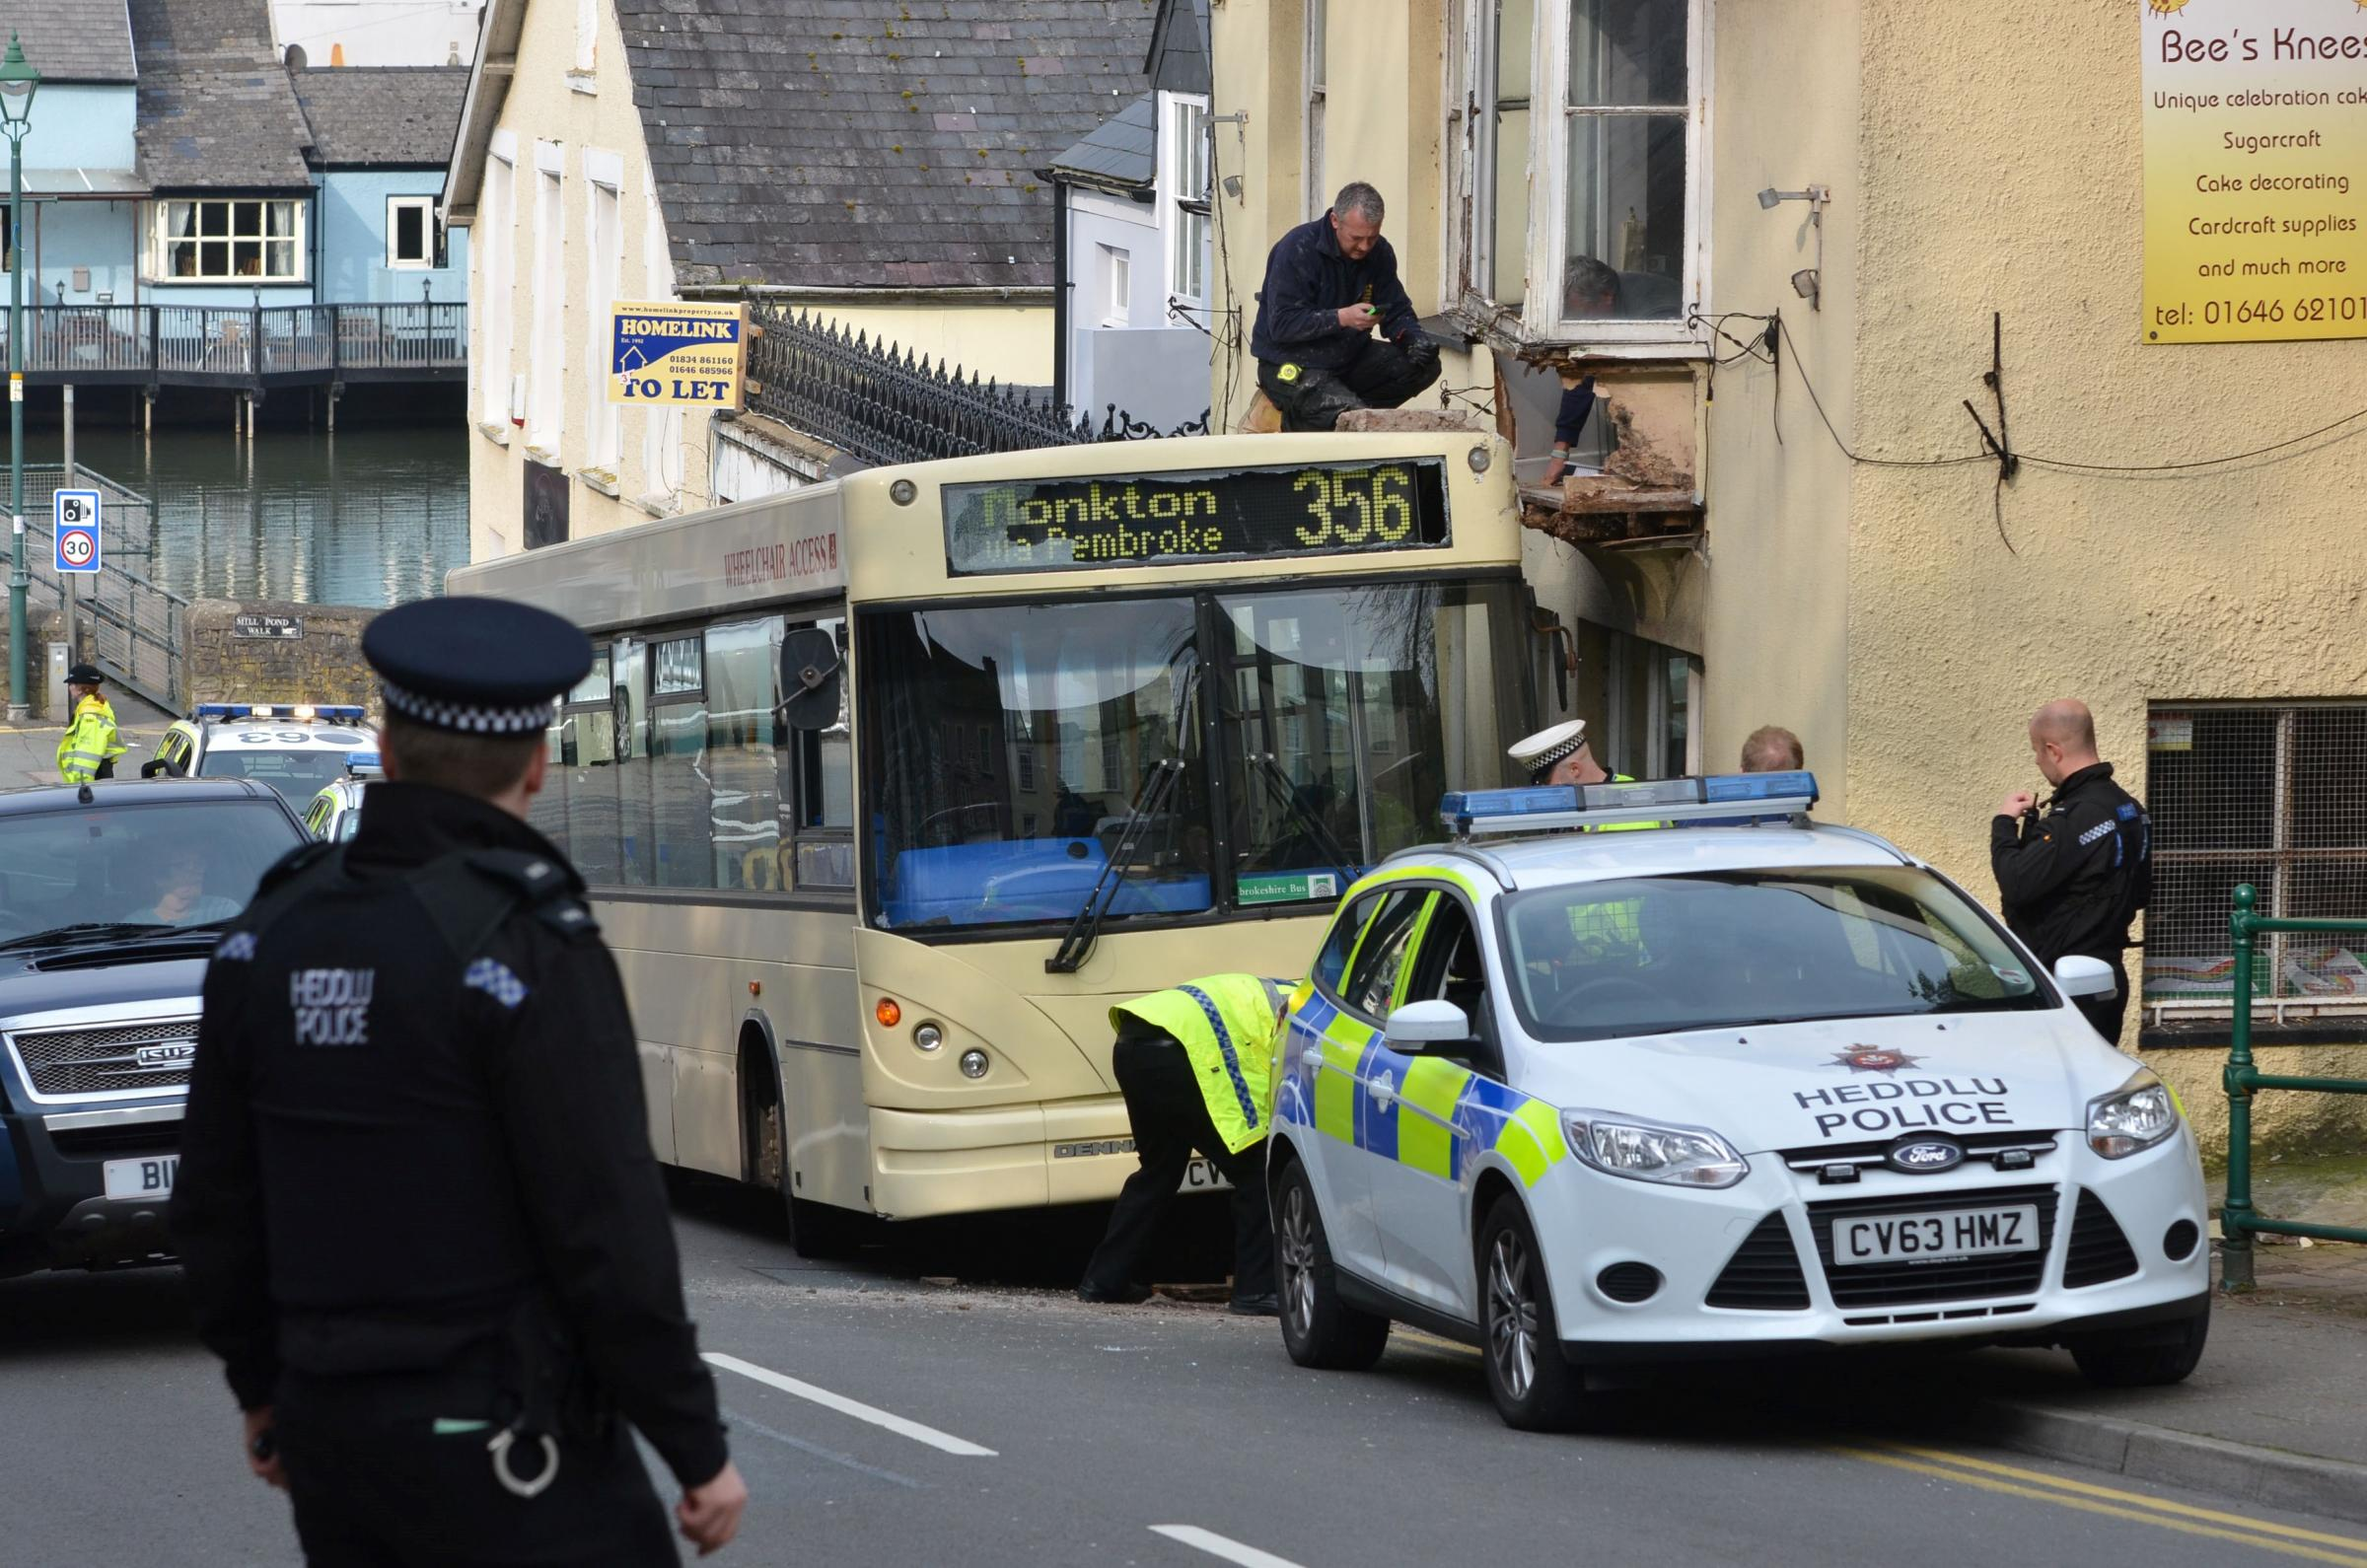 Pembroke traffic problems after bus hits shop window